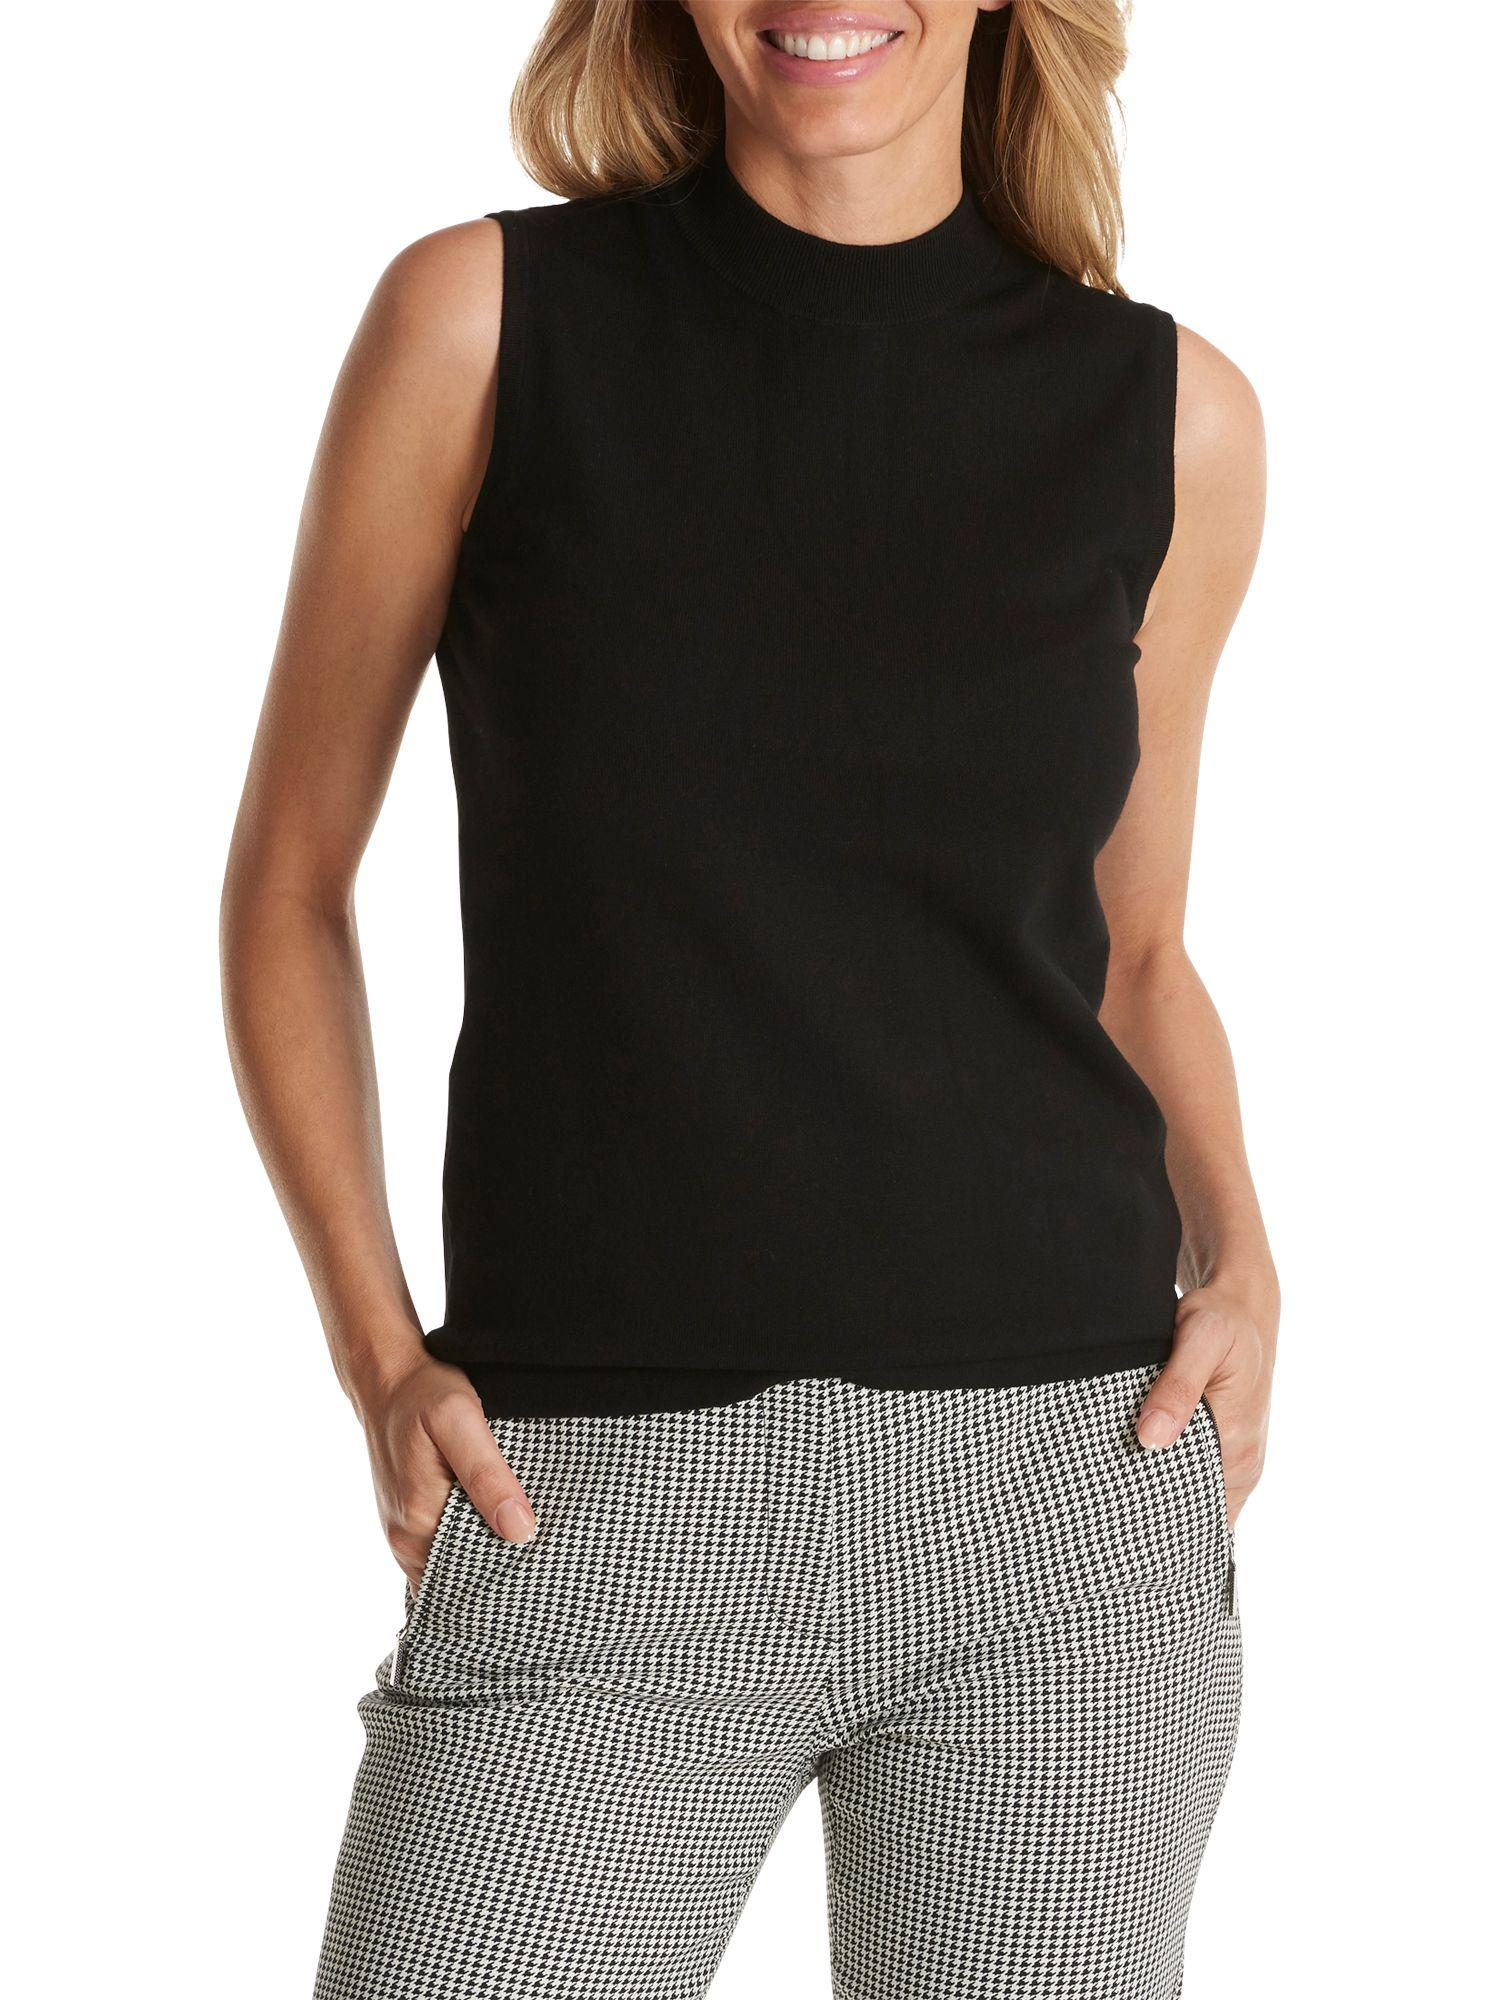 Betty Barclay Sleeveless Knitted Top in Black - Lyst c74ff4ab57